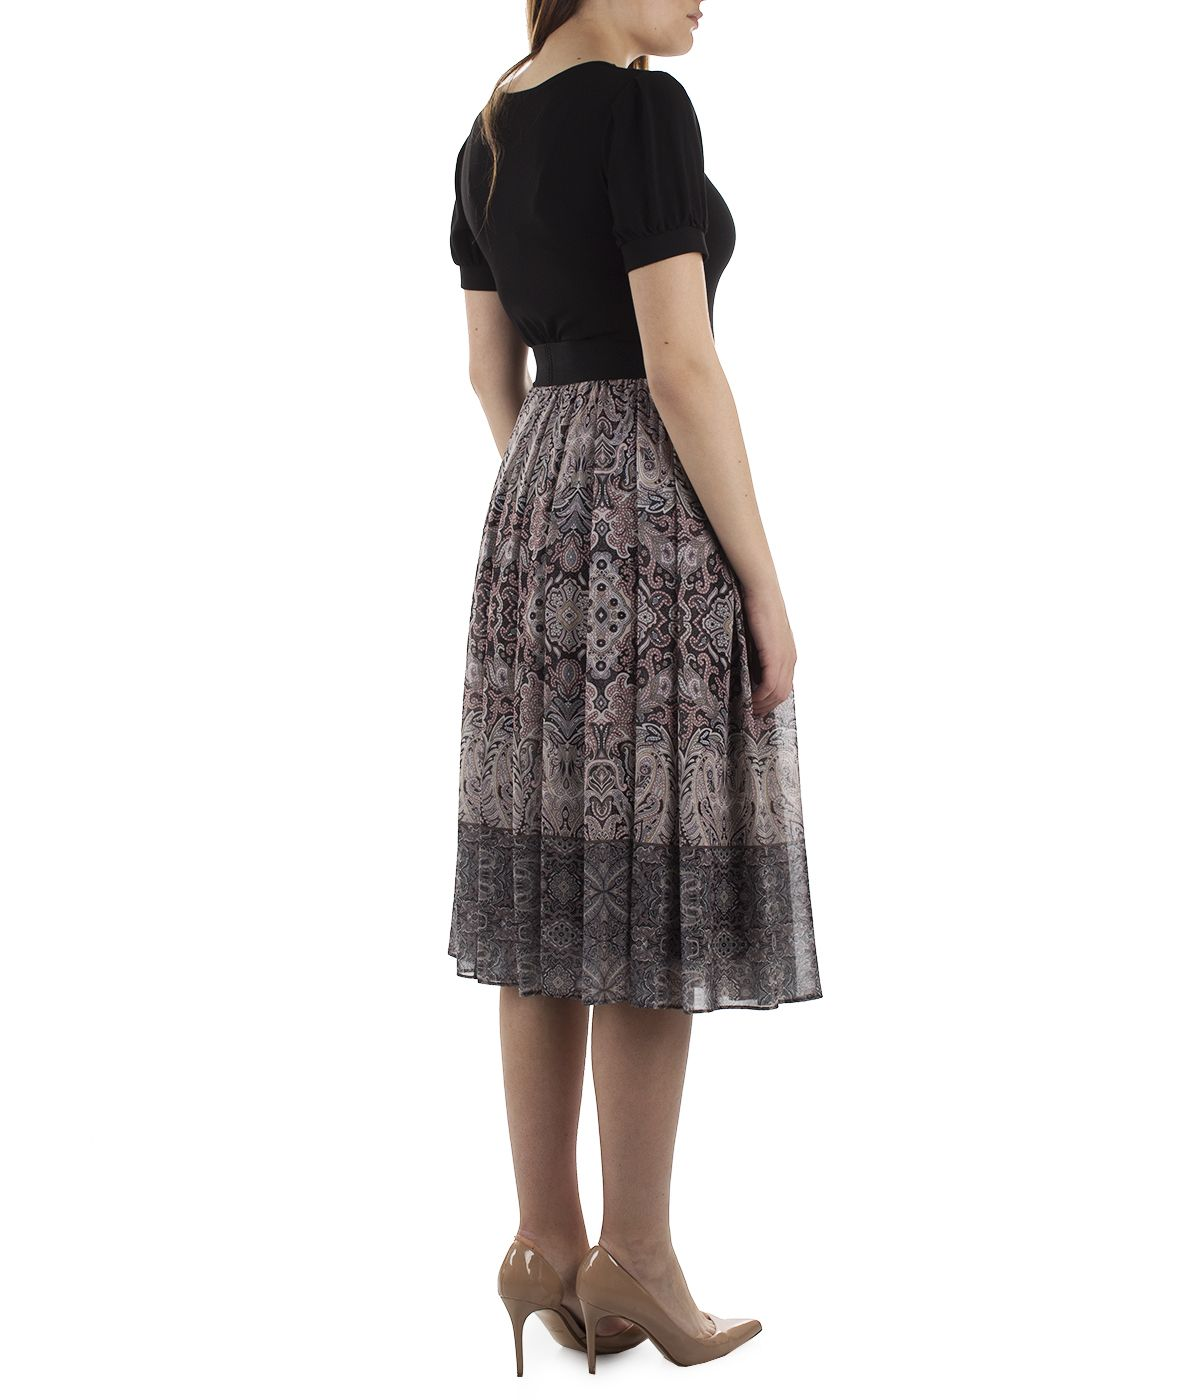 Midi skirt with box pleats and paisley print 3